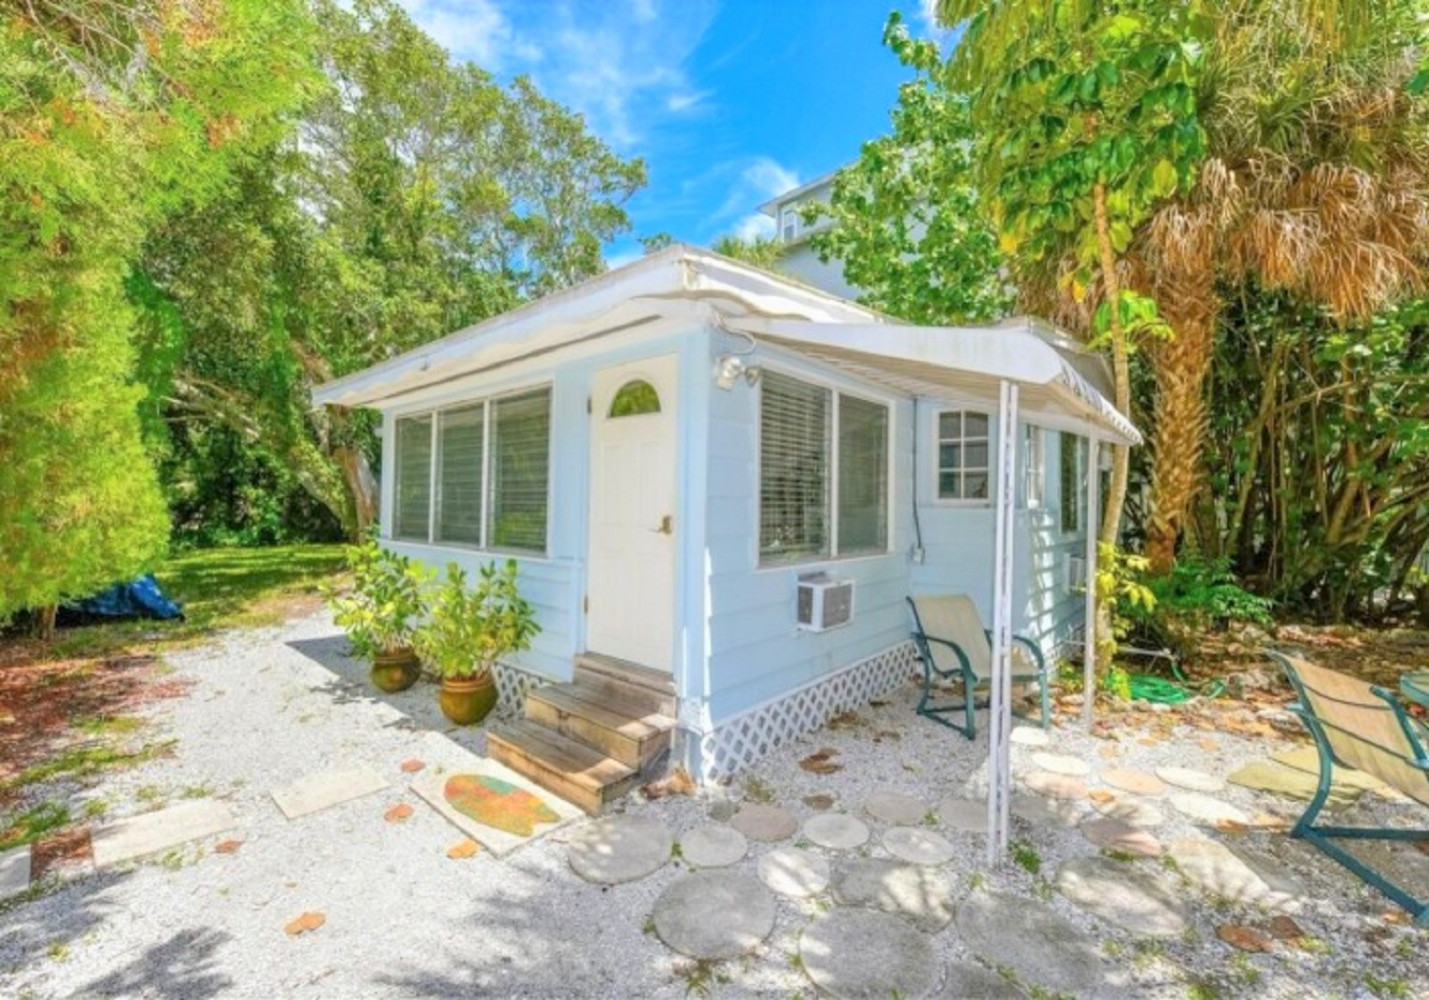 543 Cottage - Siesta Key Vacation Rentals